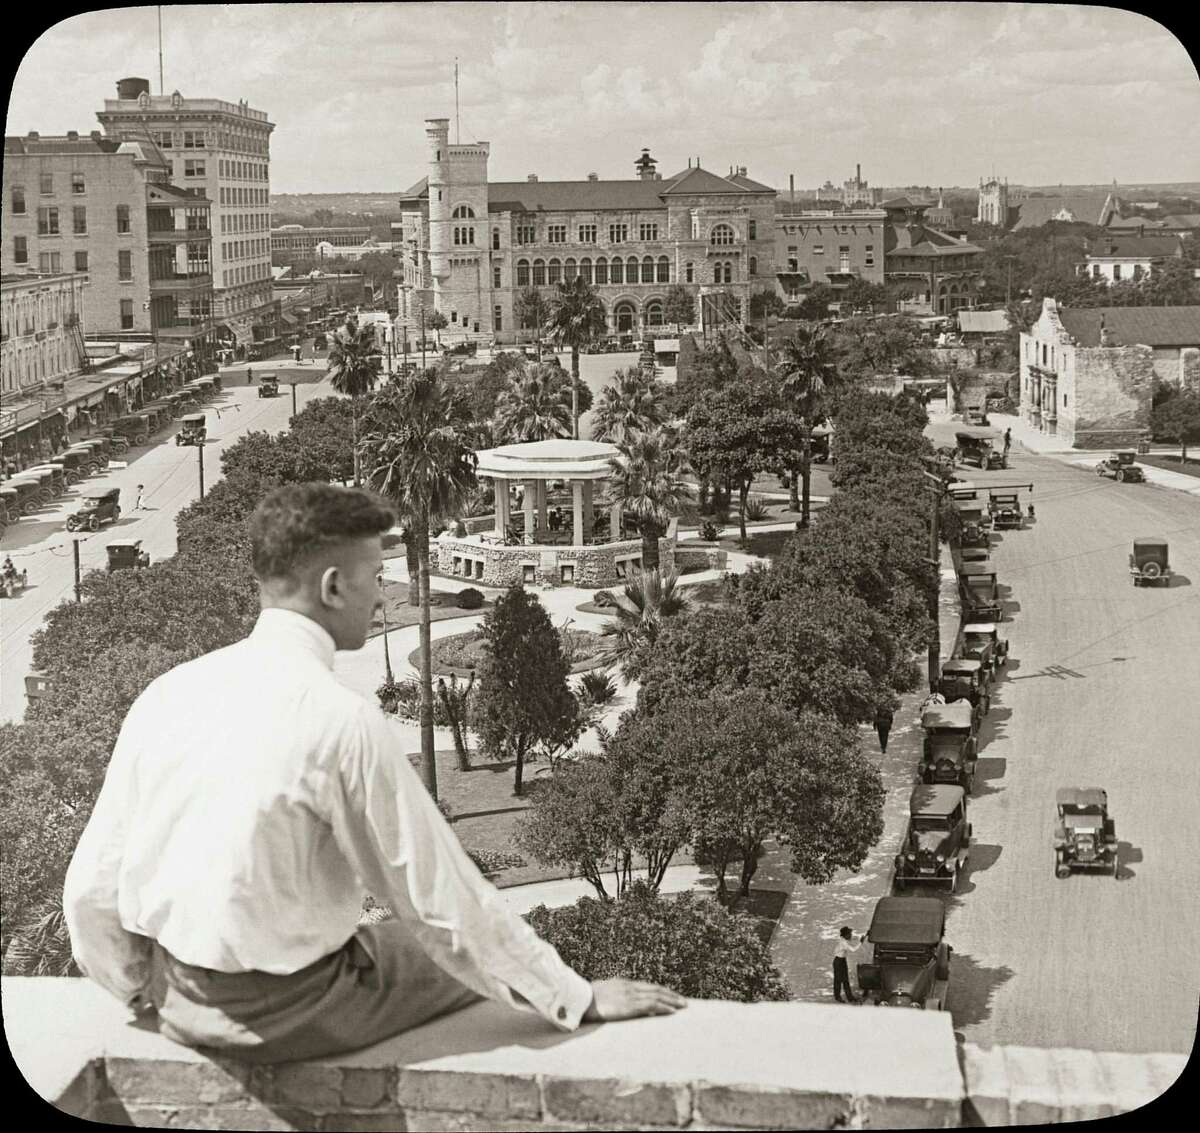 The '20s: Theview looking north at Alamo Plaza. The Alamo can be seen at the top right corner.